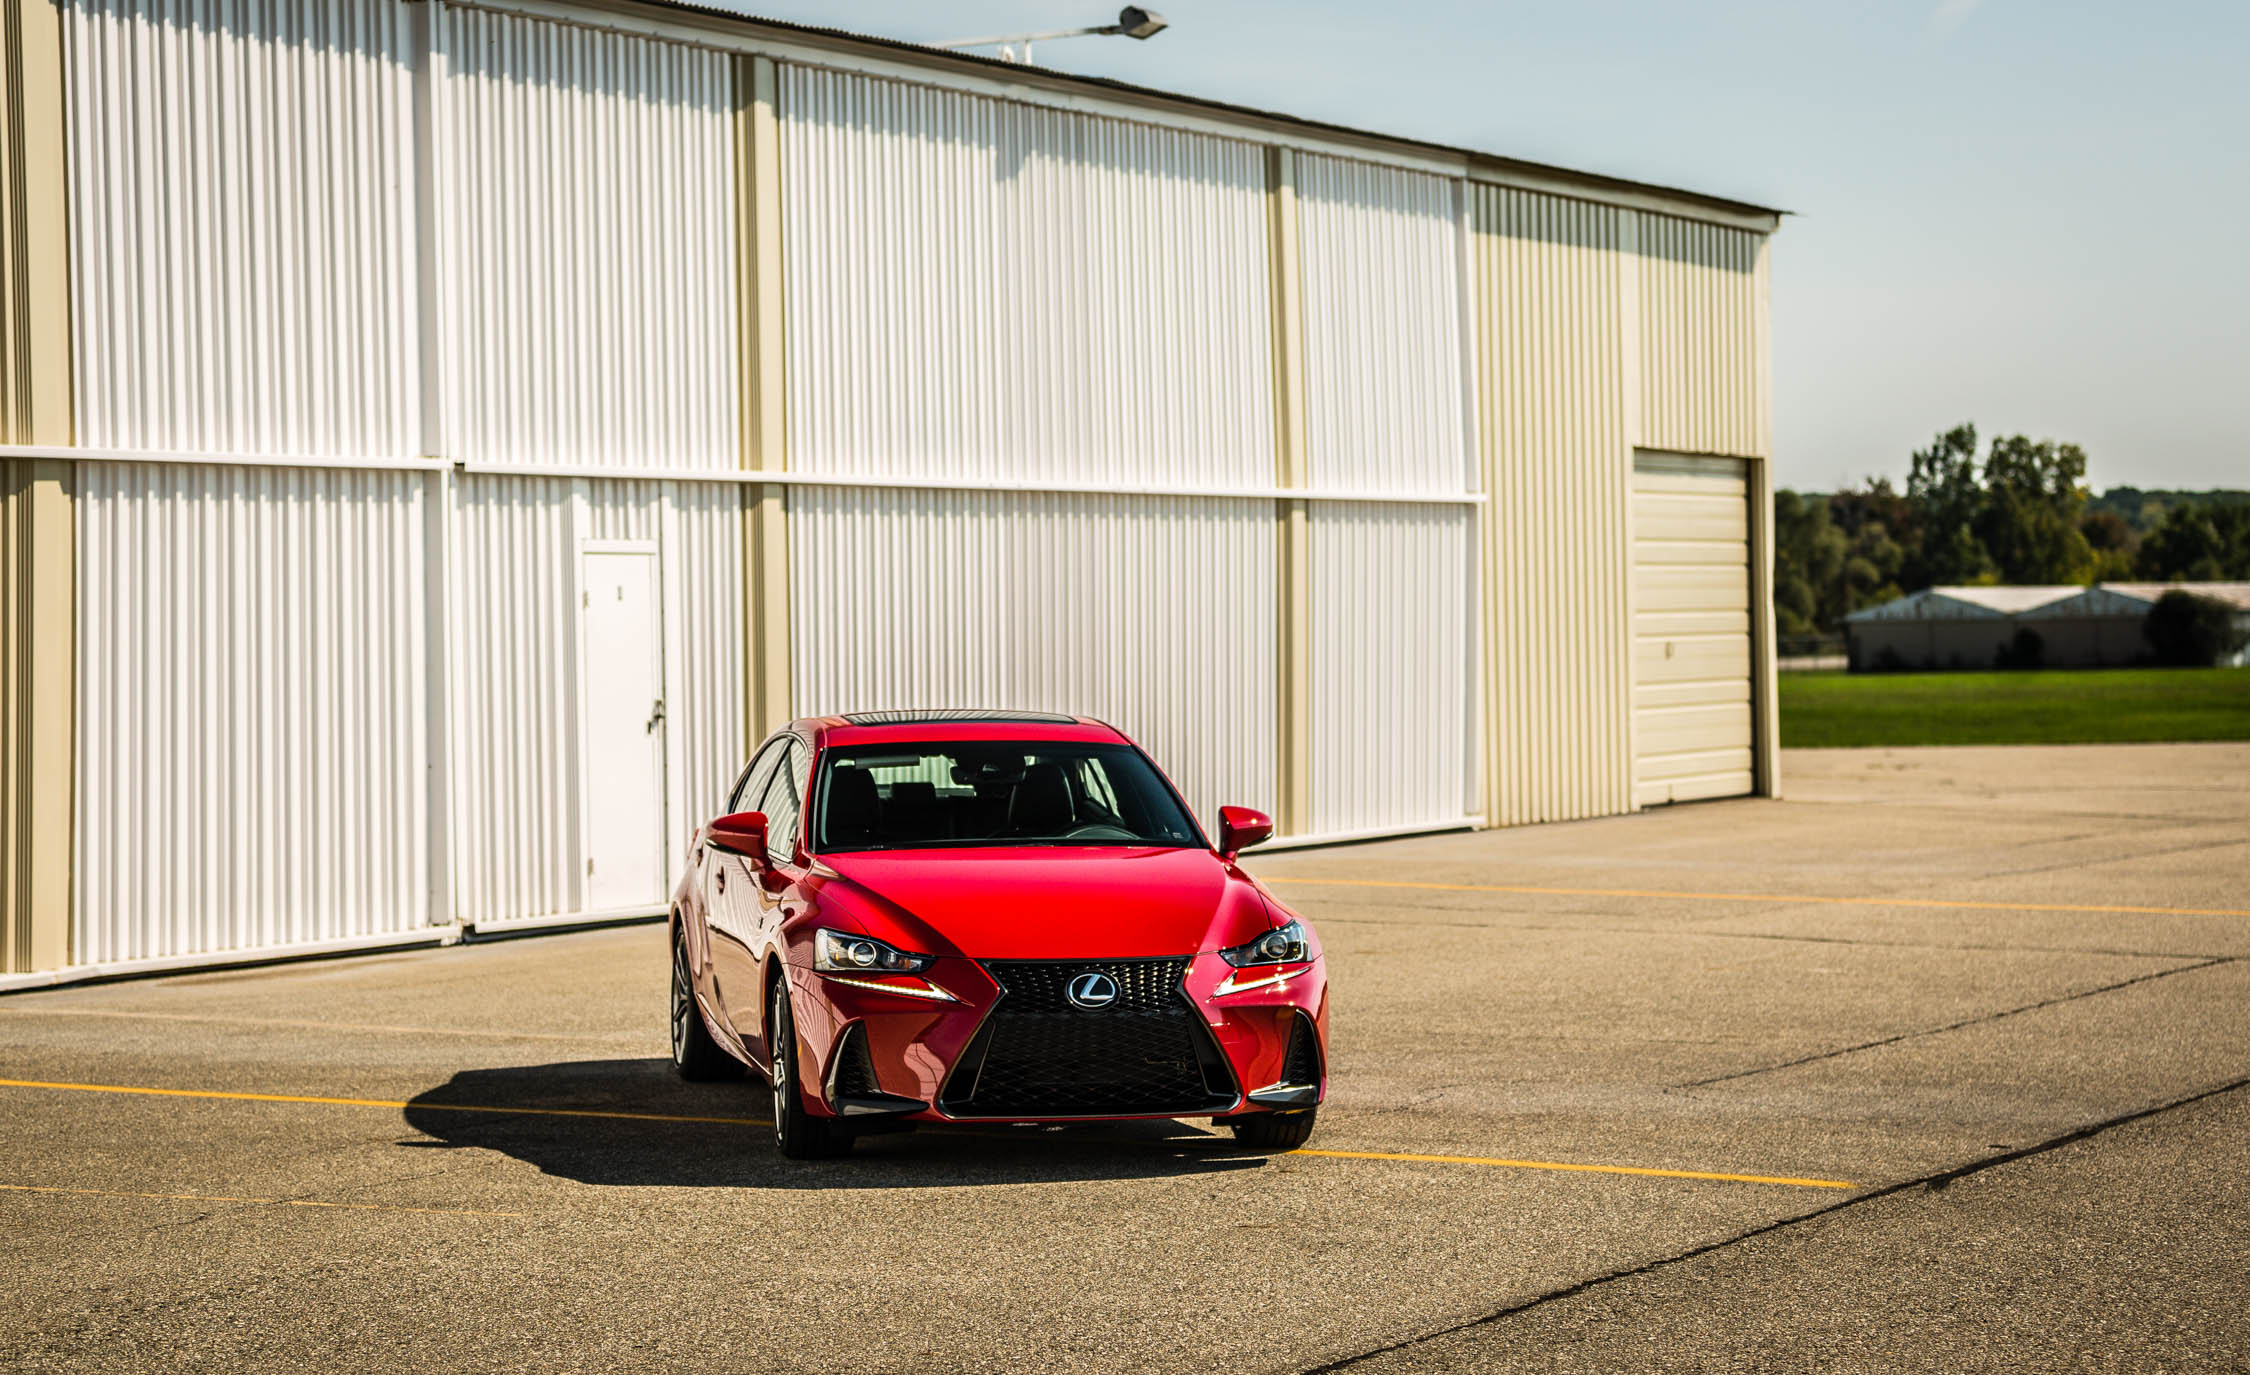 2017 Lexus IS 200t F Sport Red Exterior (View 7 of 29)